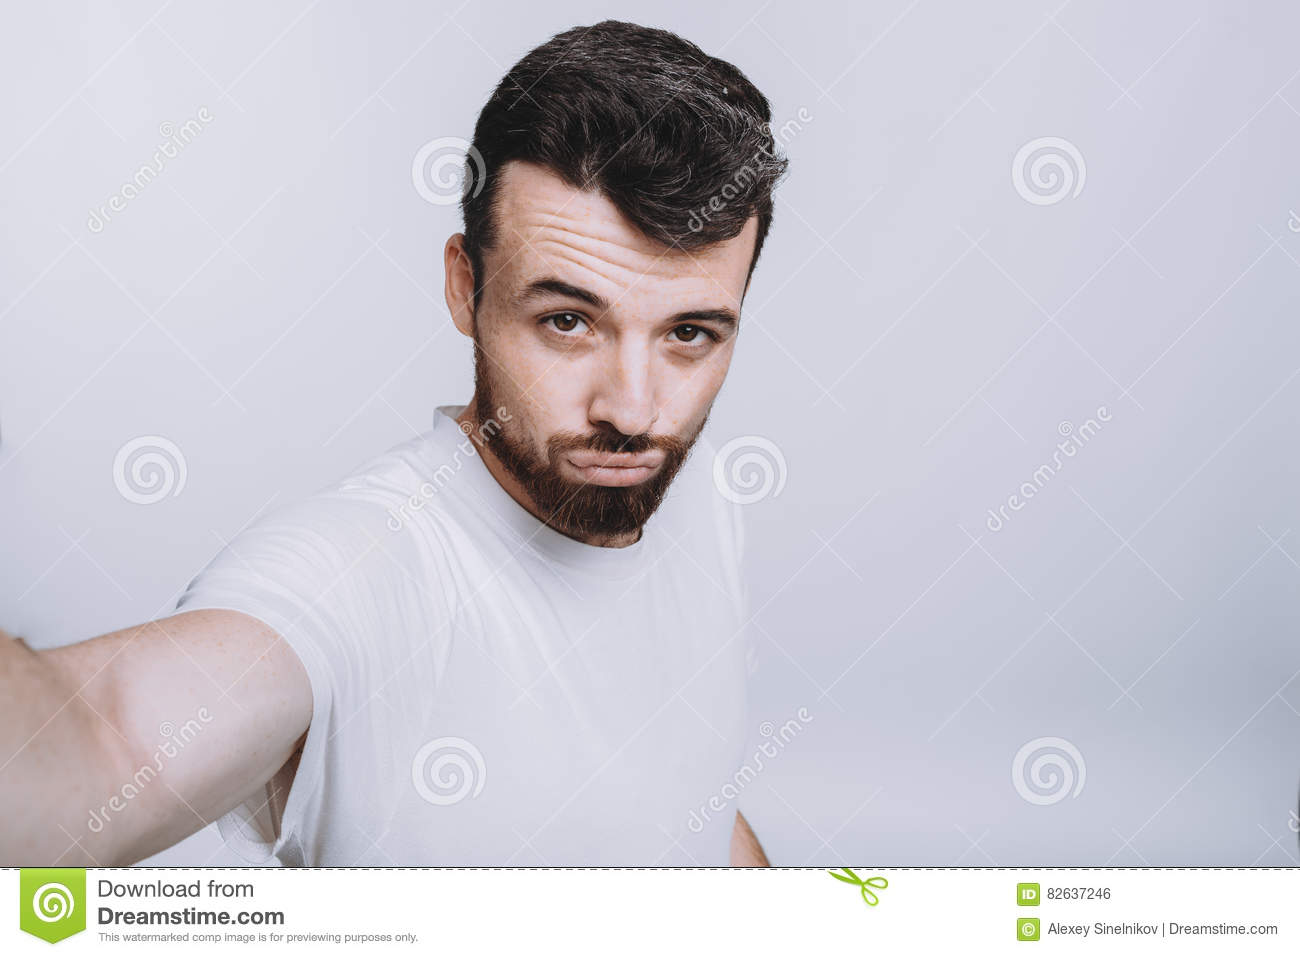 Handsome young man in white shirt doing selfie